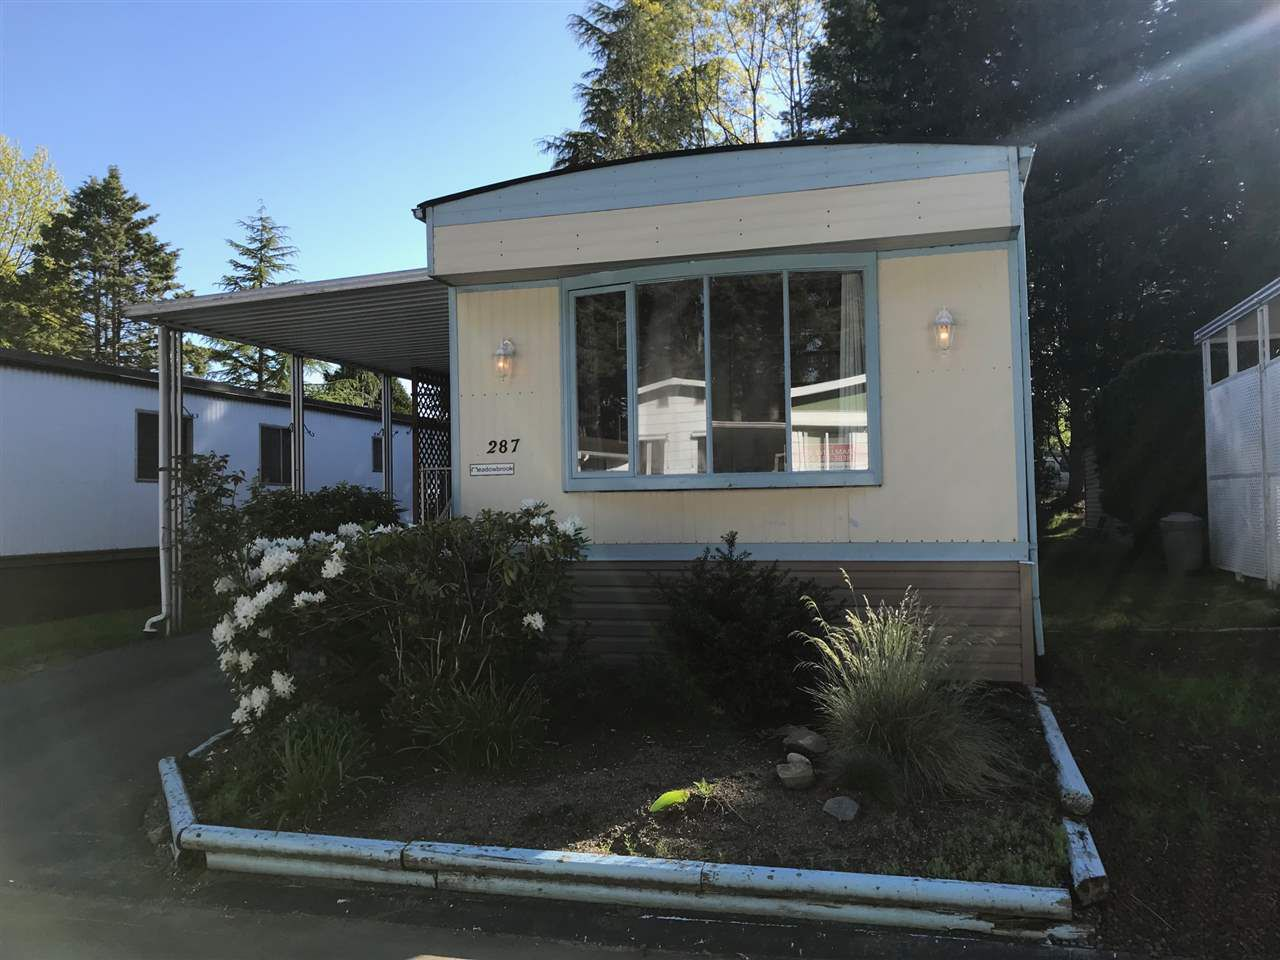 """Main Photo: 287 1840 160 Street in Surrey: King George Corridor Manufactured Home for sale in """"BREAKAWAY BAYS"""" (South Surrey White Rock)  : MLS®# R2265211"""